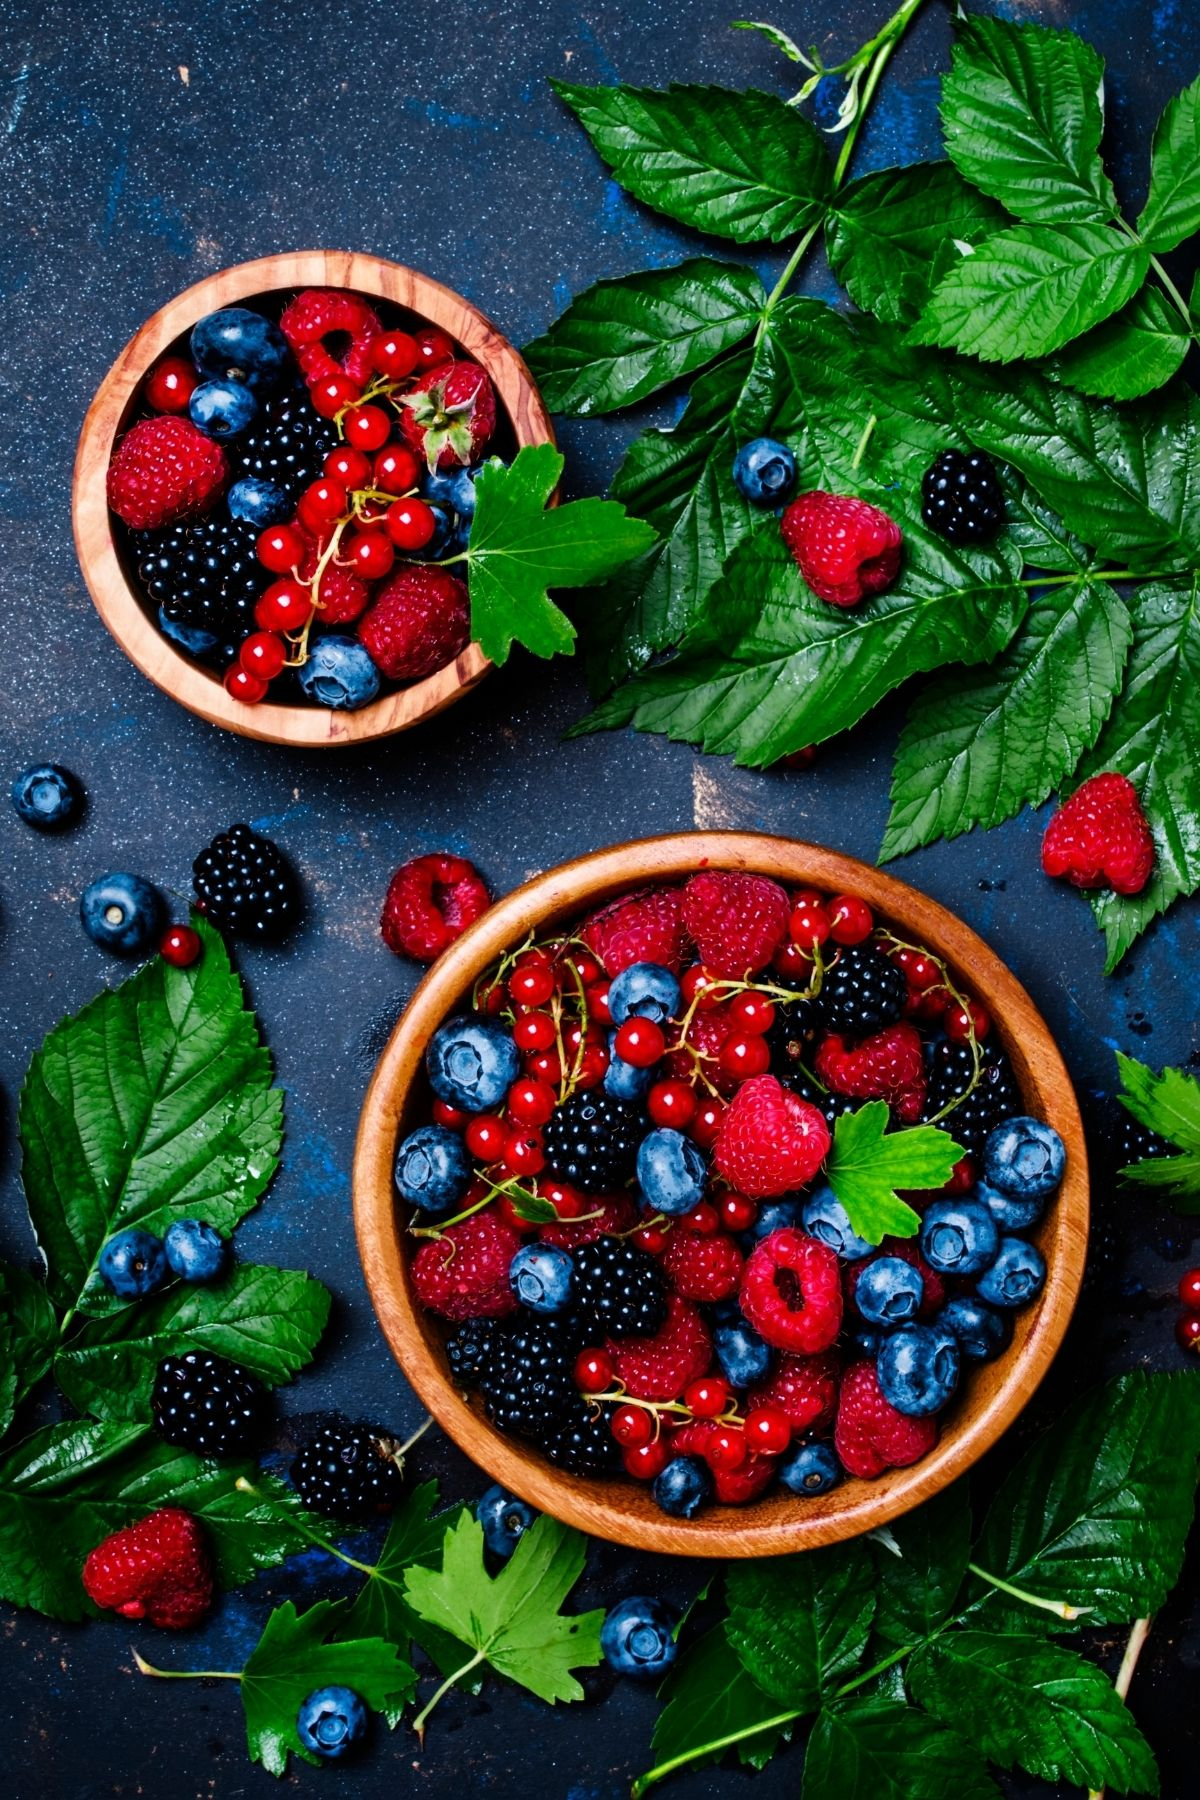 two bowls of berries on a table